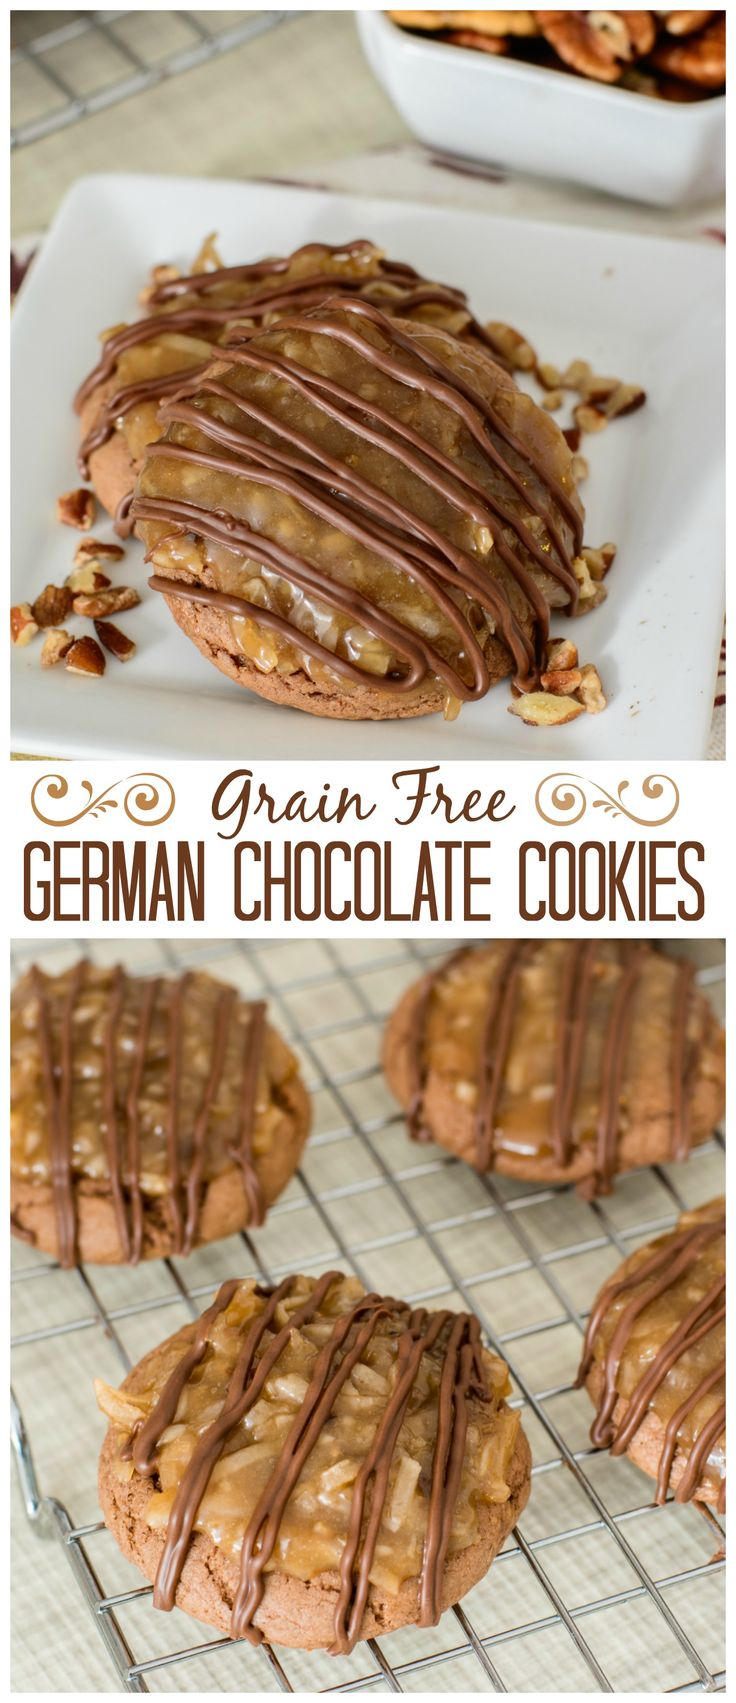 Enjoy a rich, dense, chocolatey cookie topped with a divine coconut pecan frosting and drizzled in chocolate. It's hard to believe these decadent German Chocolate Cookies are grain free. Such a deliciously sinful dessert!